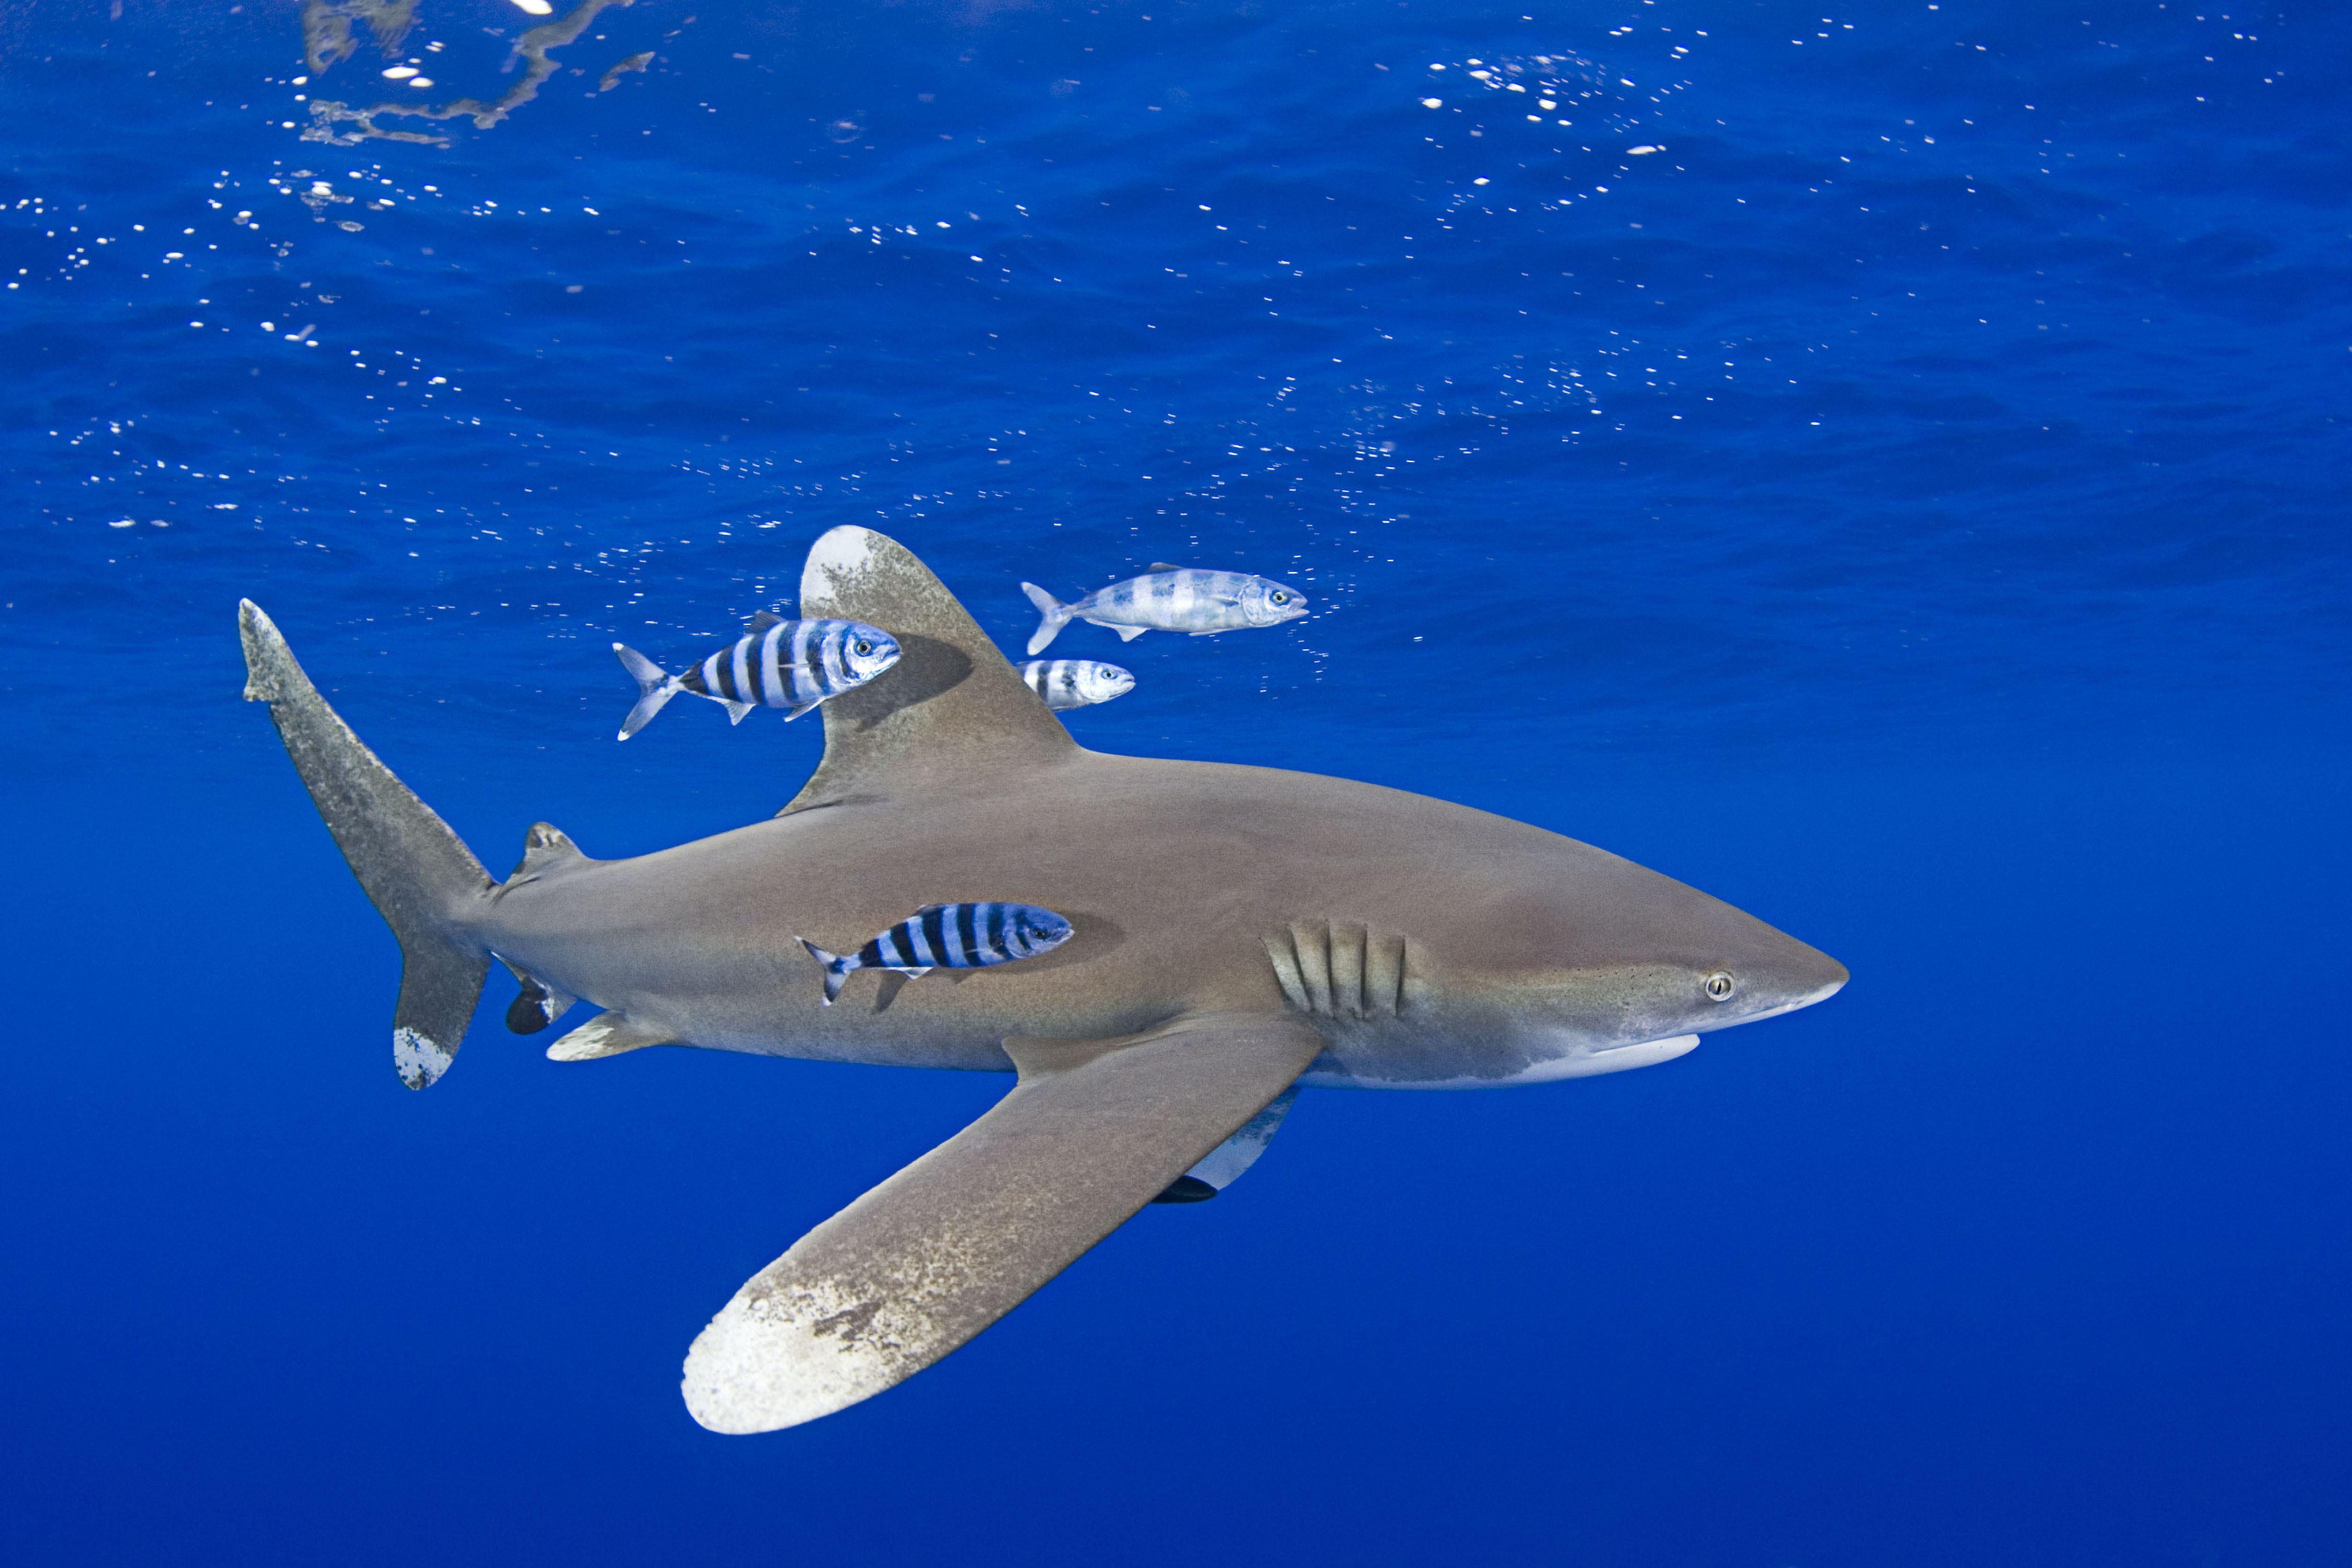 The oceanic whitetip shark (Carcharhinus longimanus) is a pelagic shark and can be found in tropical and warm waters around the world. The oceanic whitetip shark is often accompanied by pilot fish (Naucrates ductor) who feed on the shark's leftovers. WWF lists pelagic sharks as a priority species. Kona Coast, Hawaii, Central Pacific Ocean